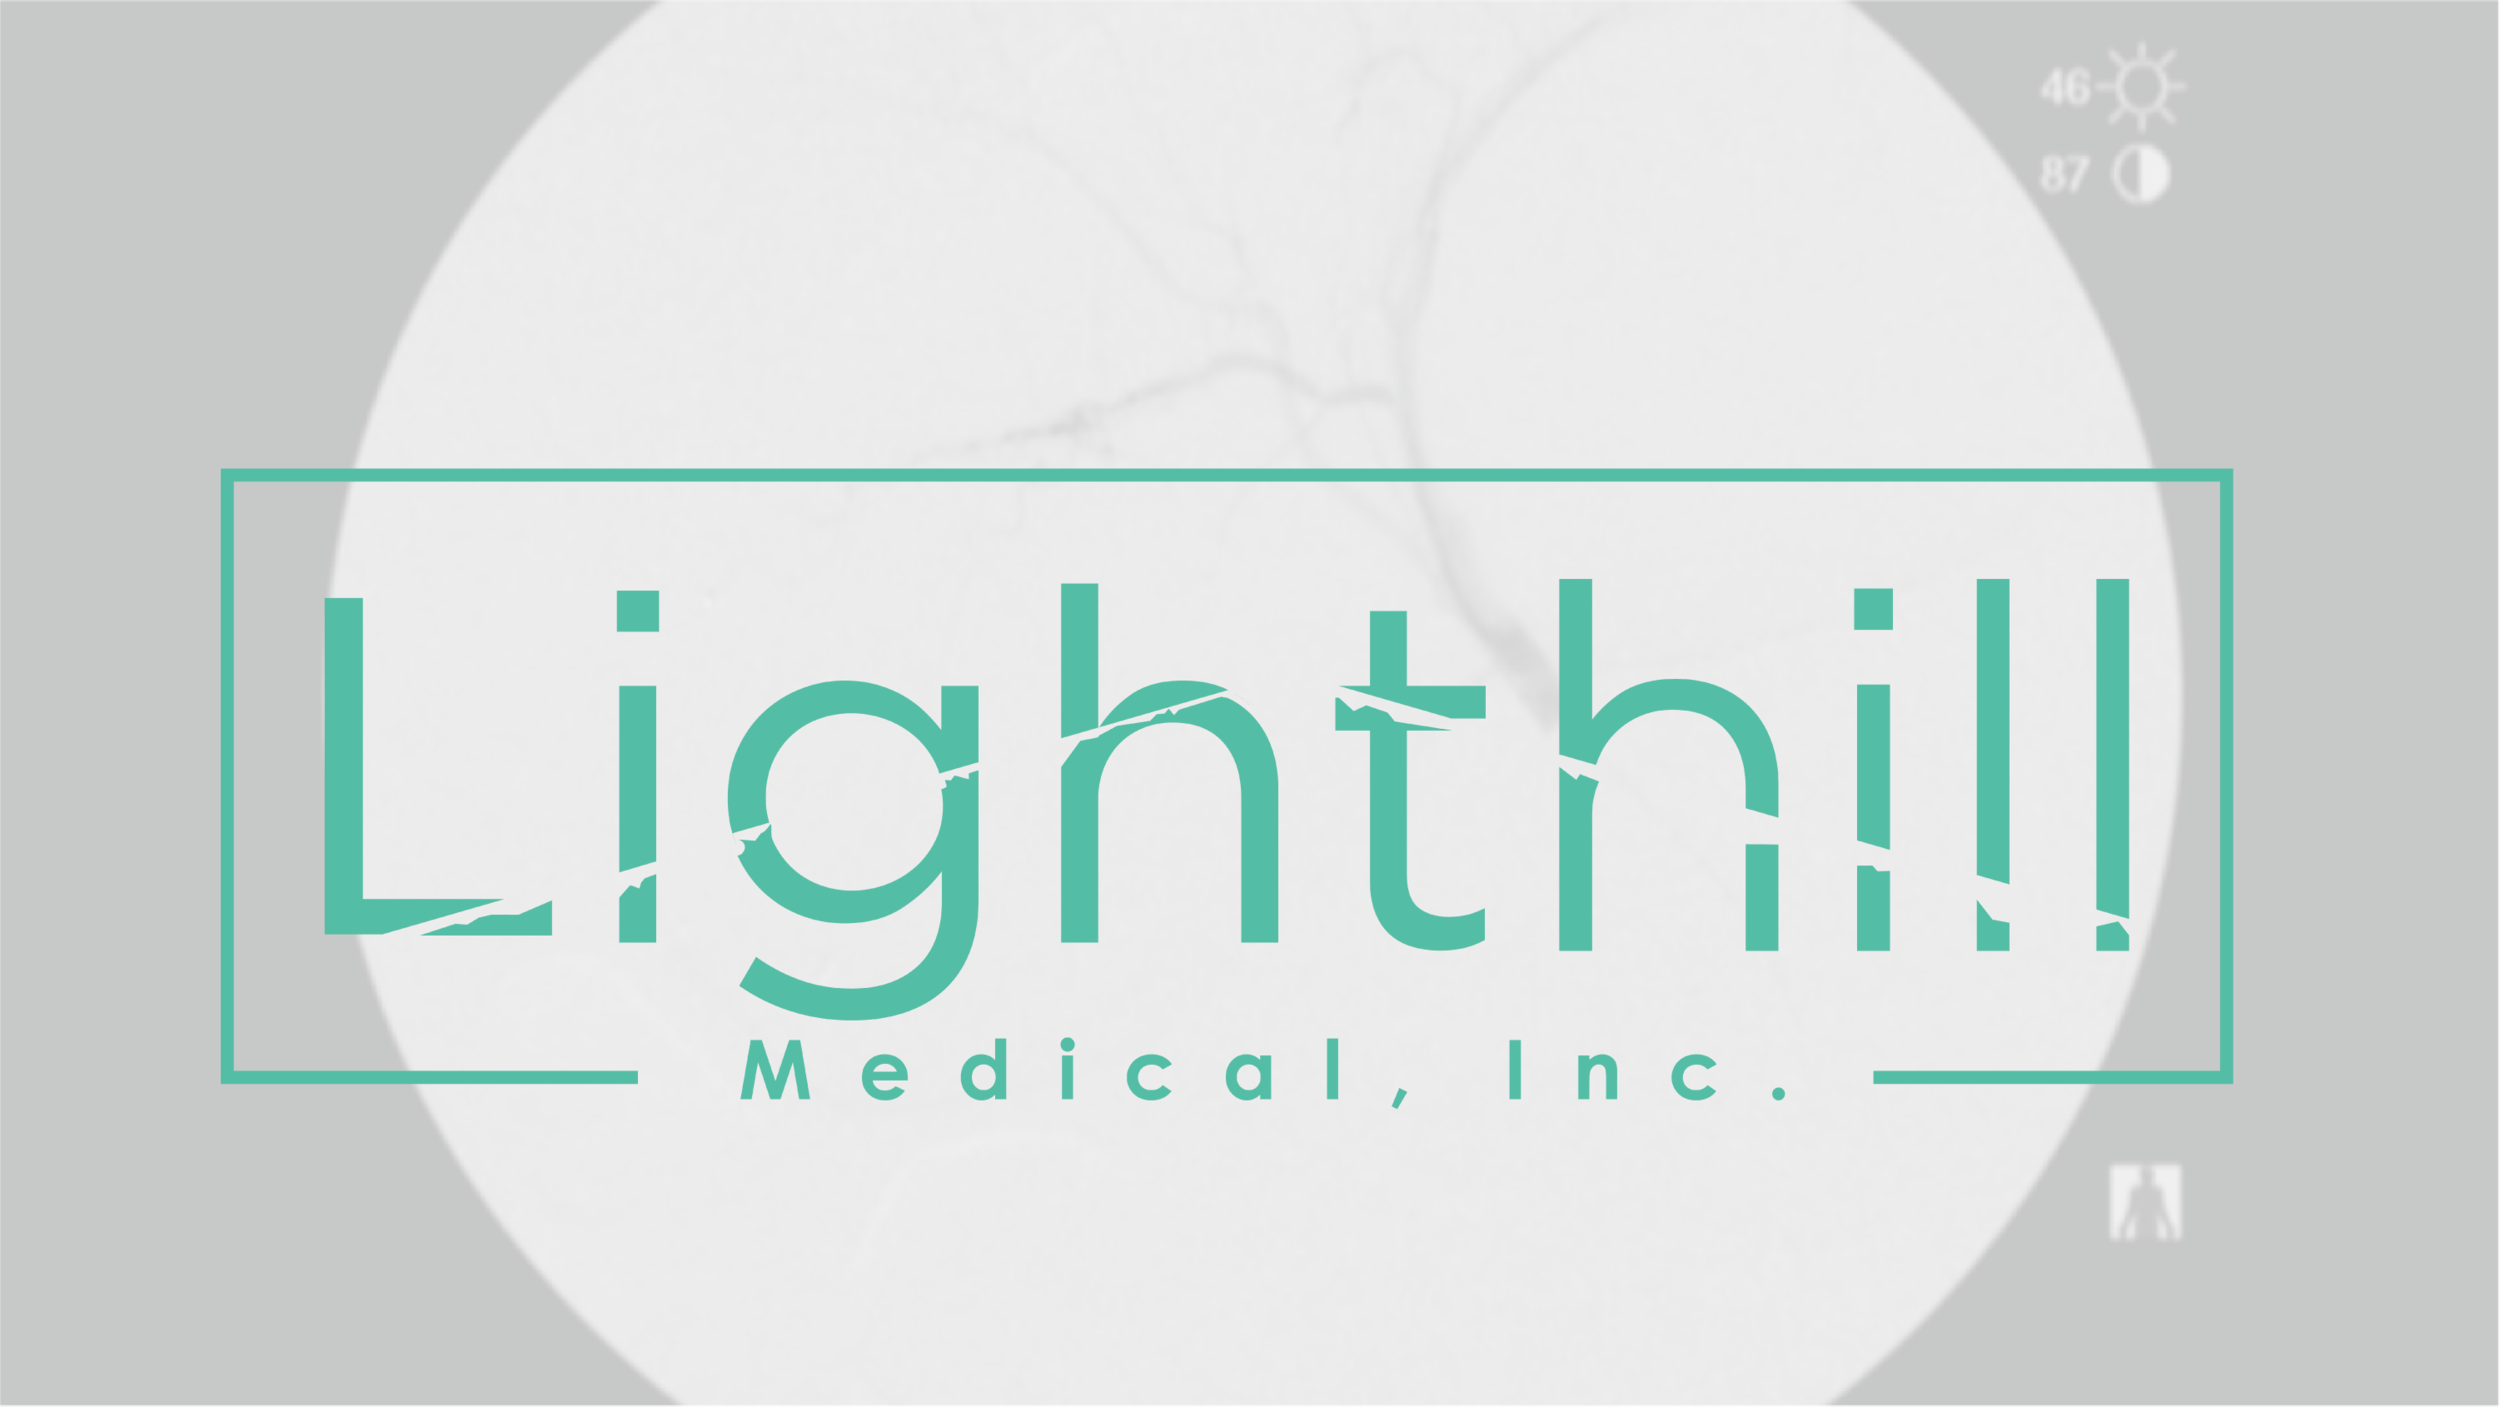 Lighthill is developing a family of catheters for the delivery of oncology agents for image-guided, minimally invasive interventional procedures. Read more here. -